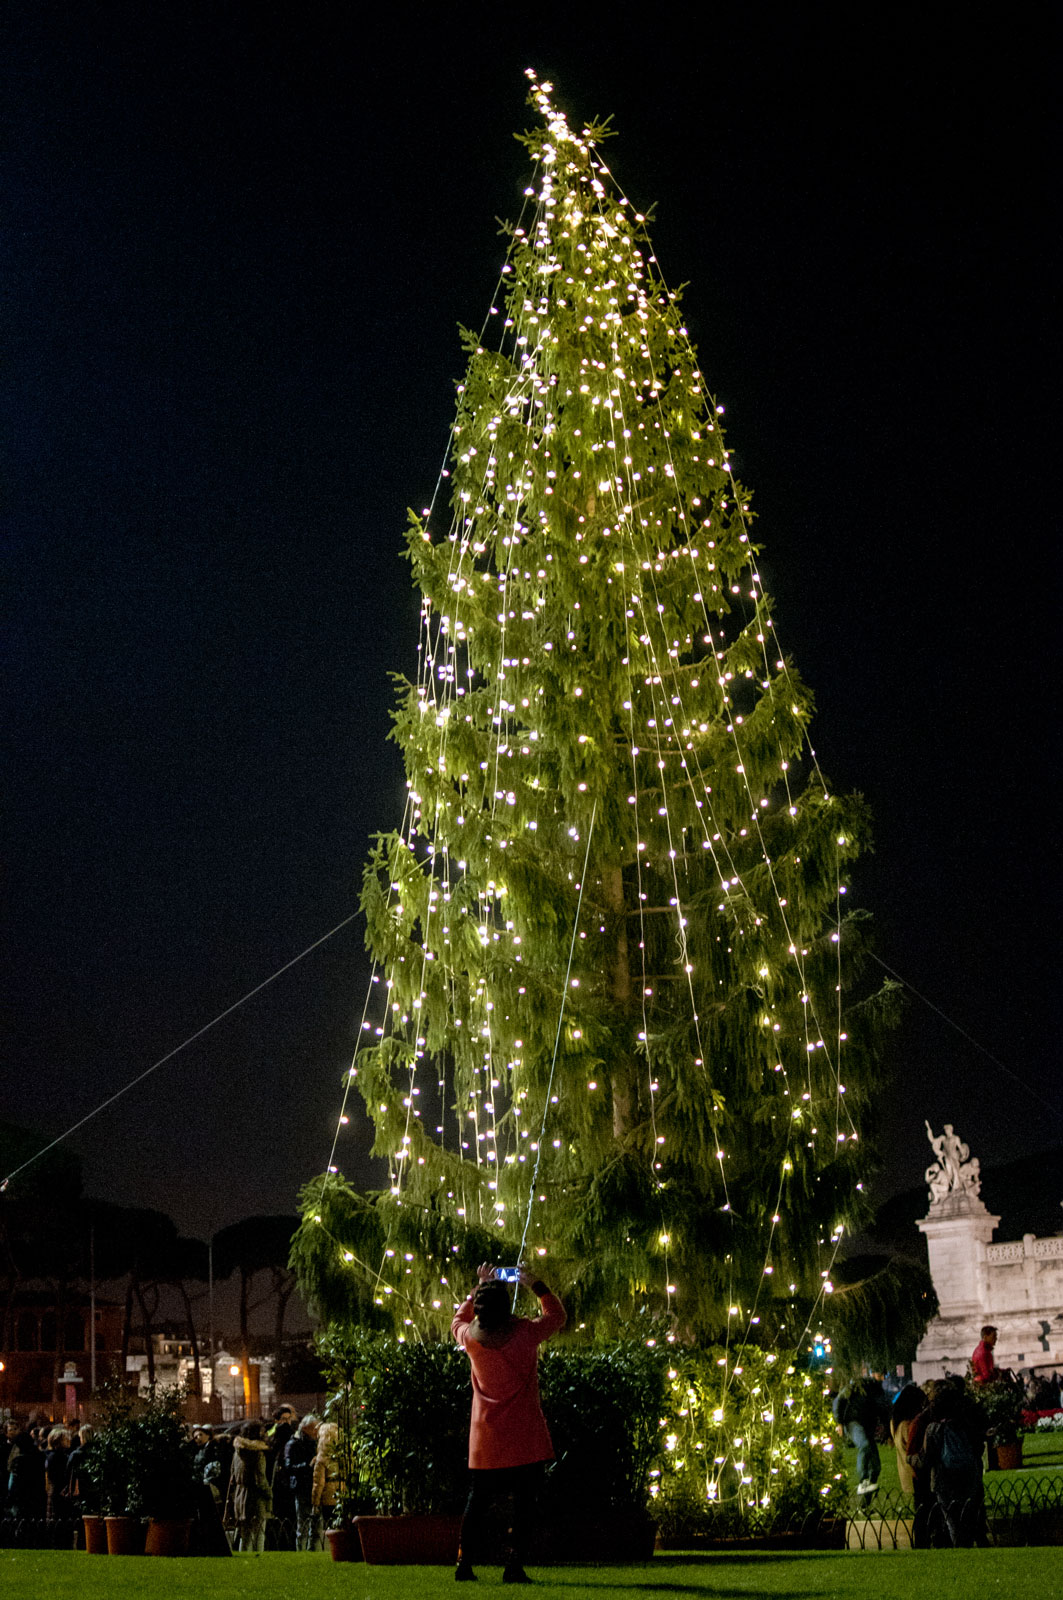 This Christmas tree, in Rome's Piazza Venezia, is getting hate from residents.